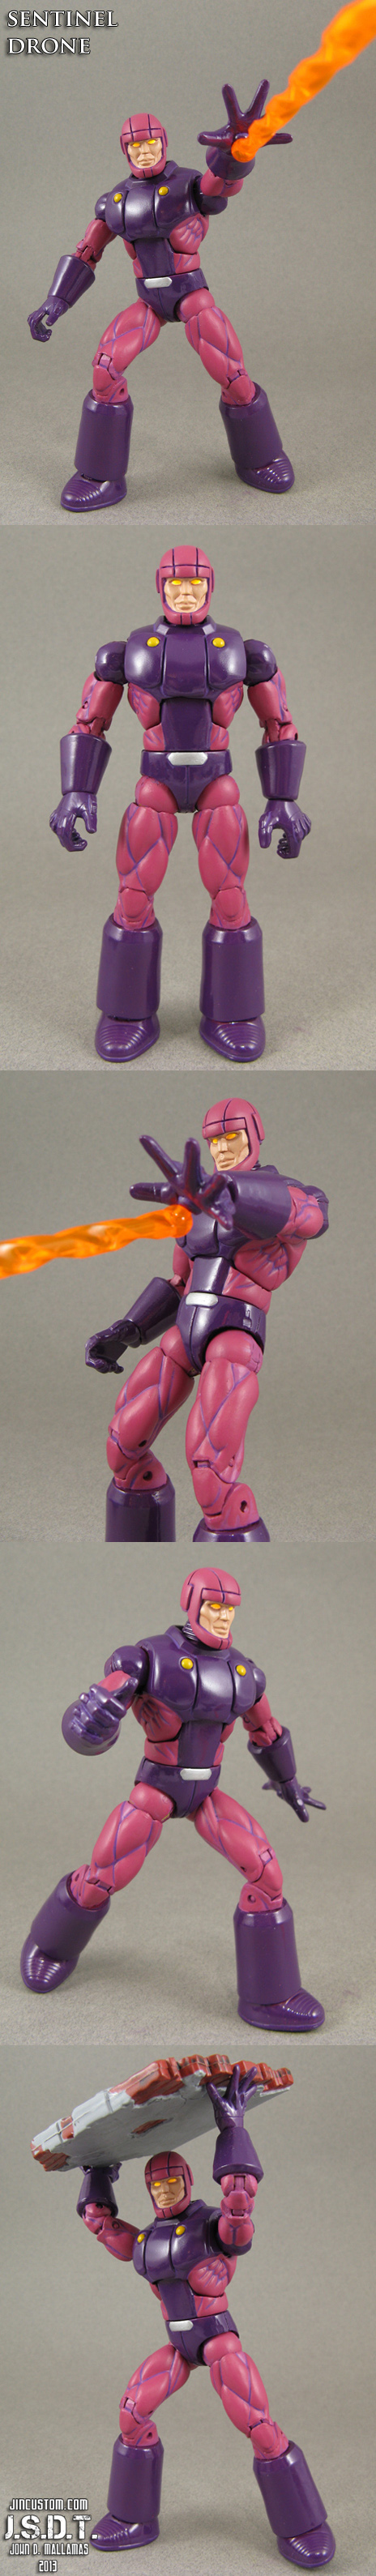 X-Men Arcade game Sentinel Drone Custom Figure by Jin-Saotome